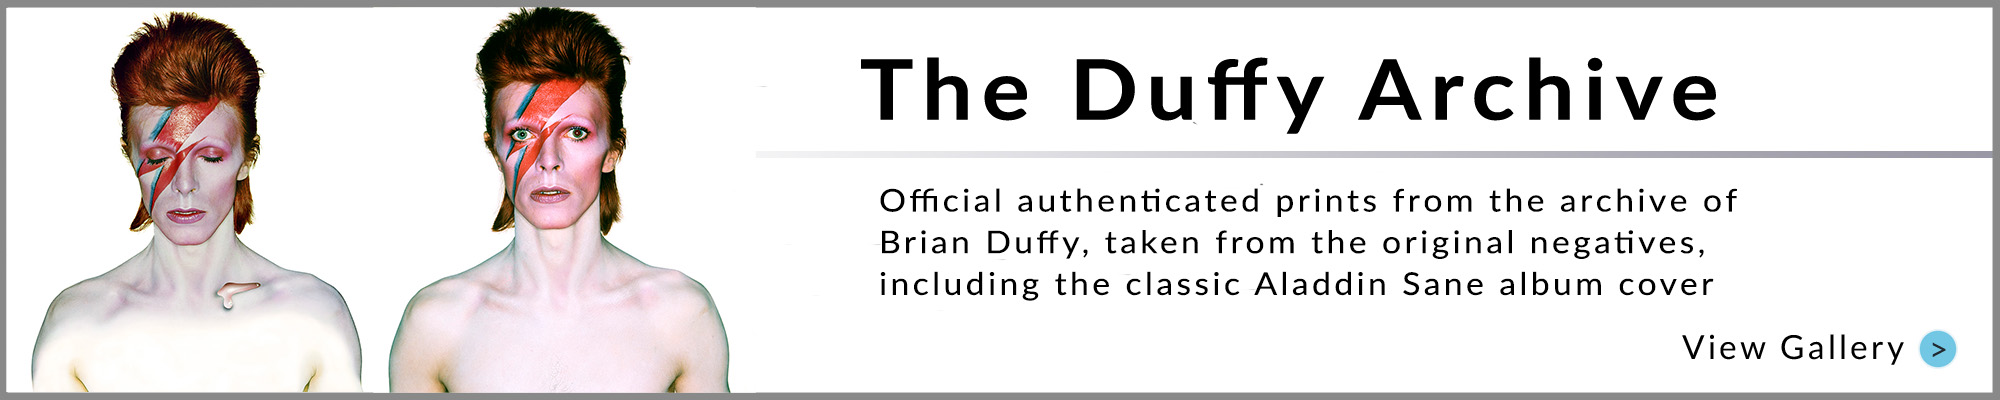 The Duffy Archive